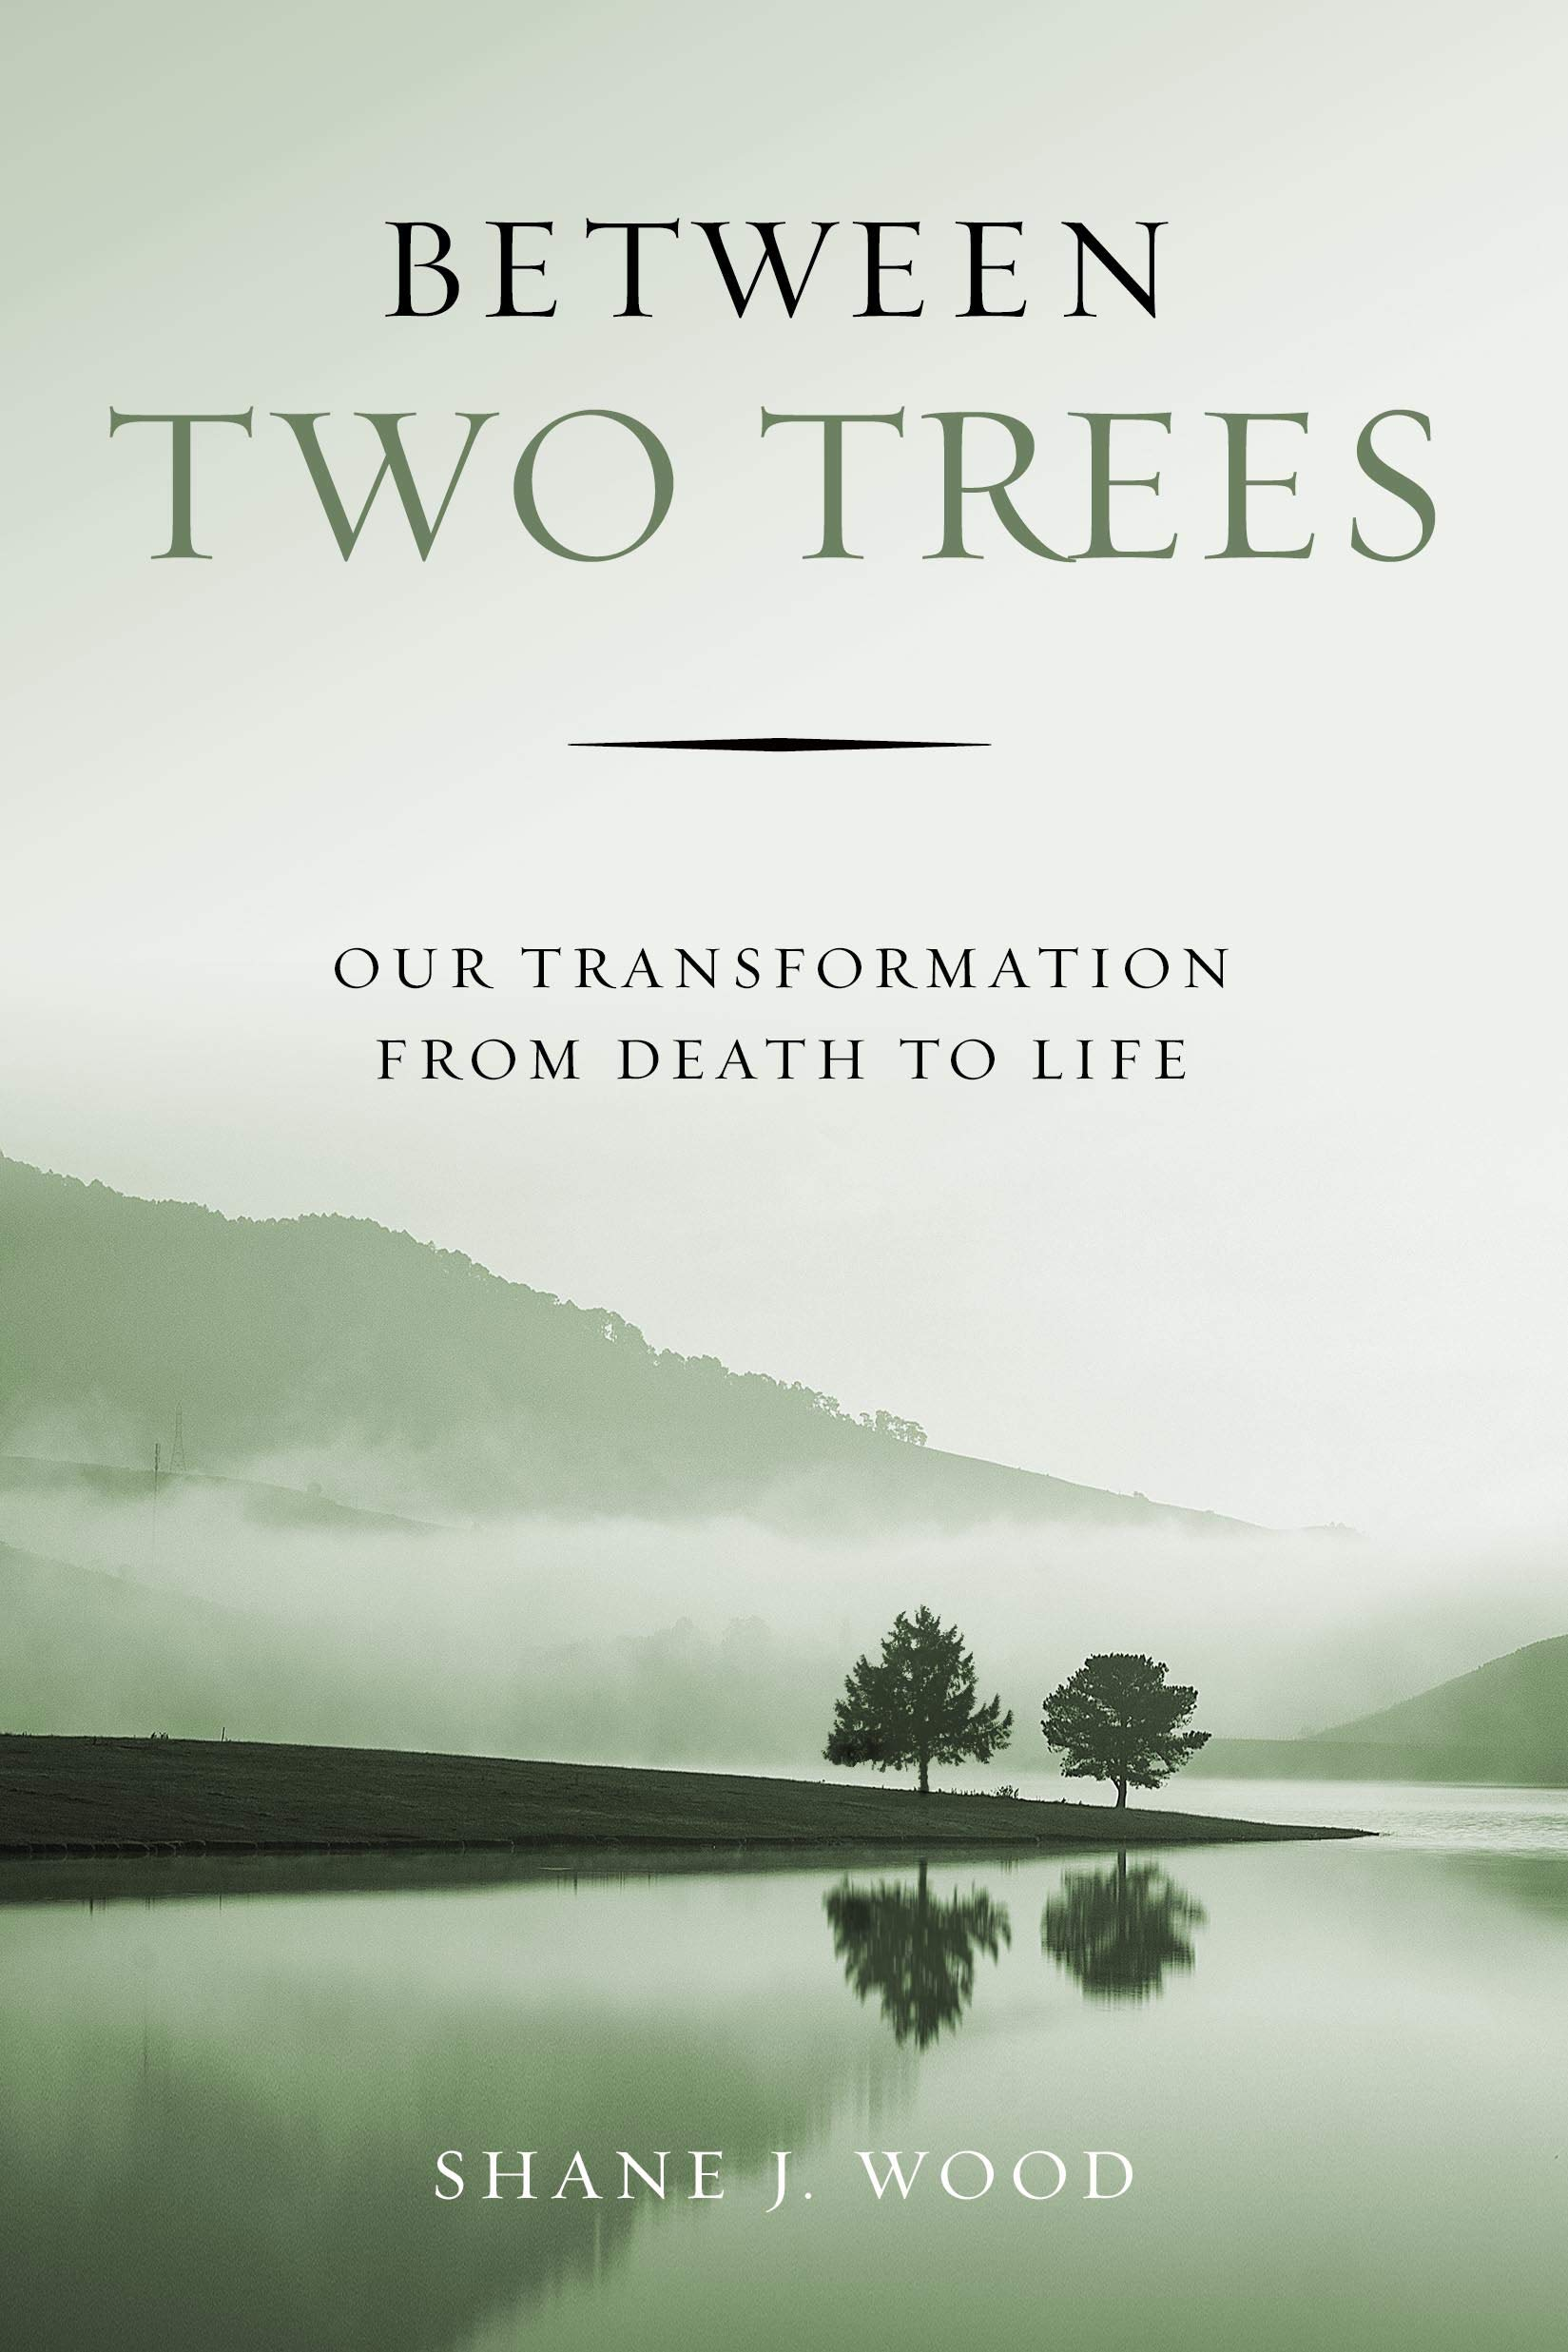 Between Two Trees: Our Transformation from Death to Life: Shane J